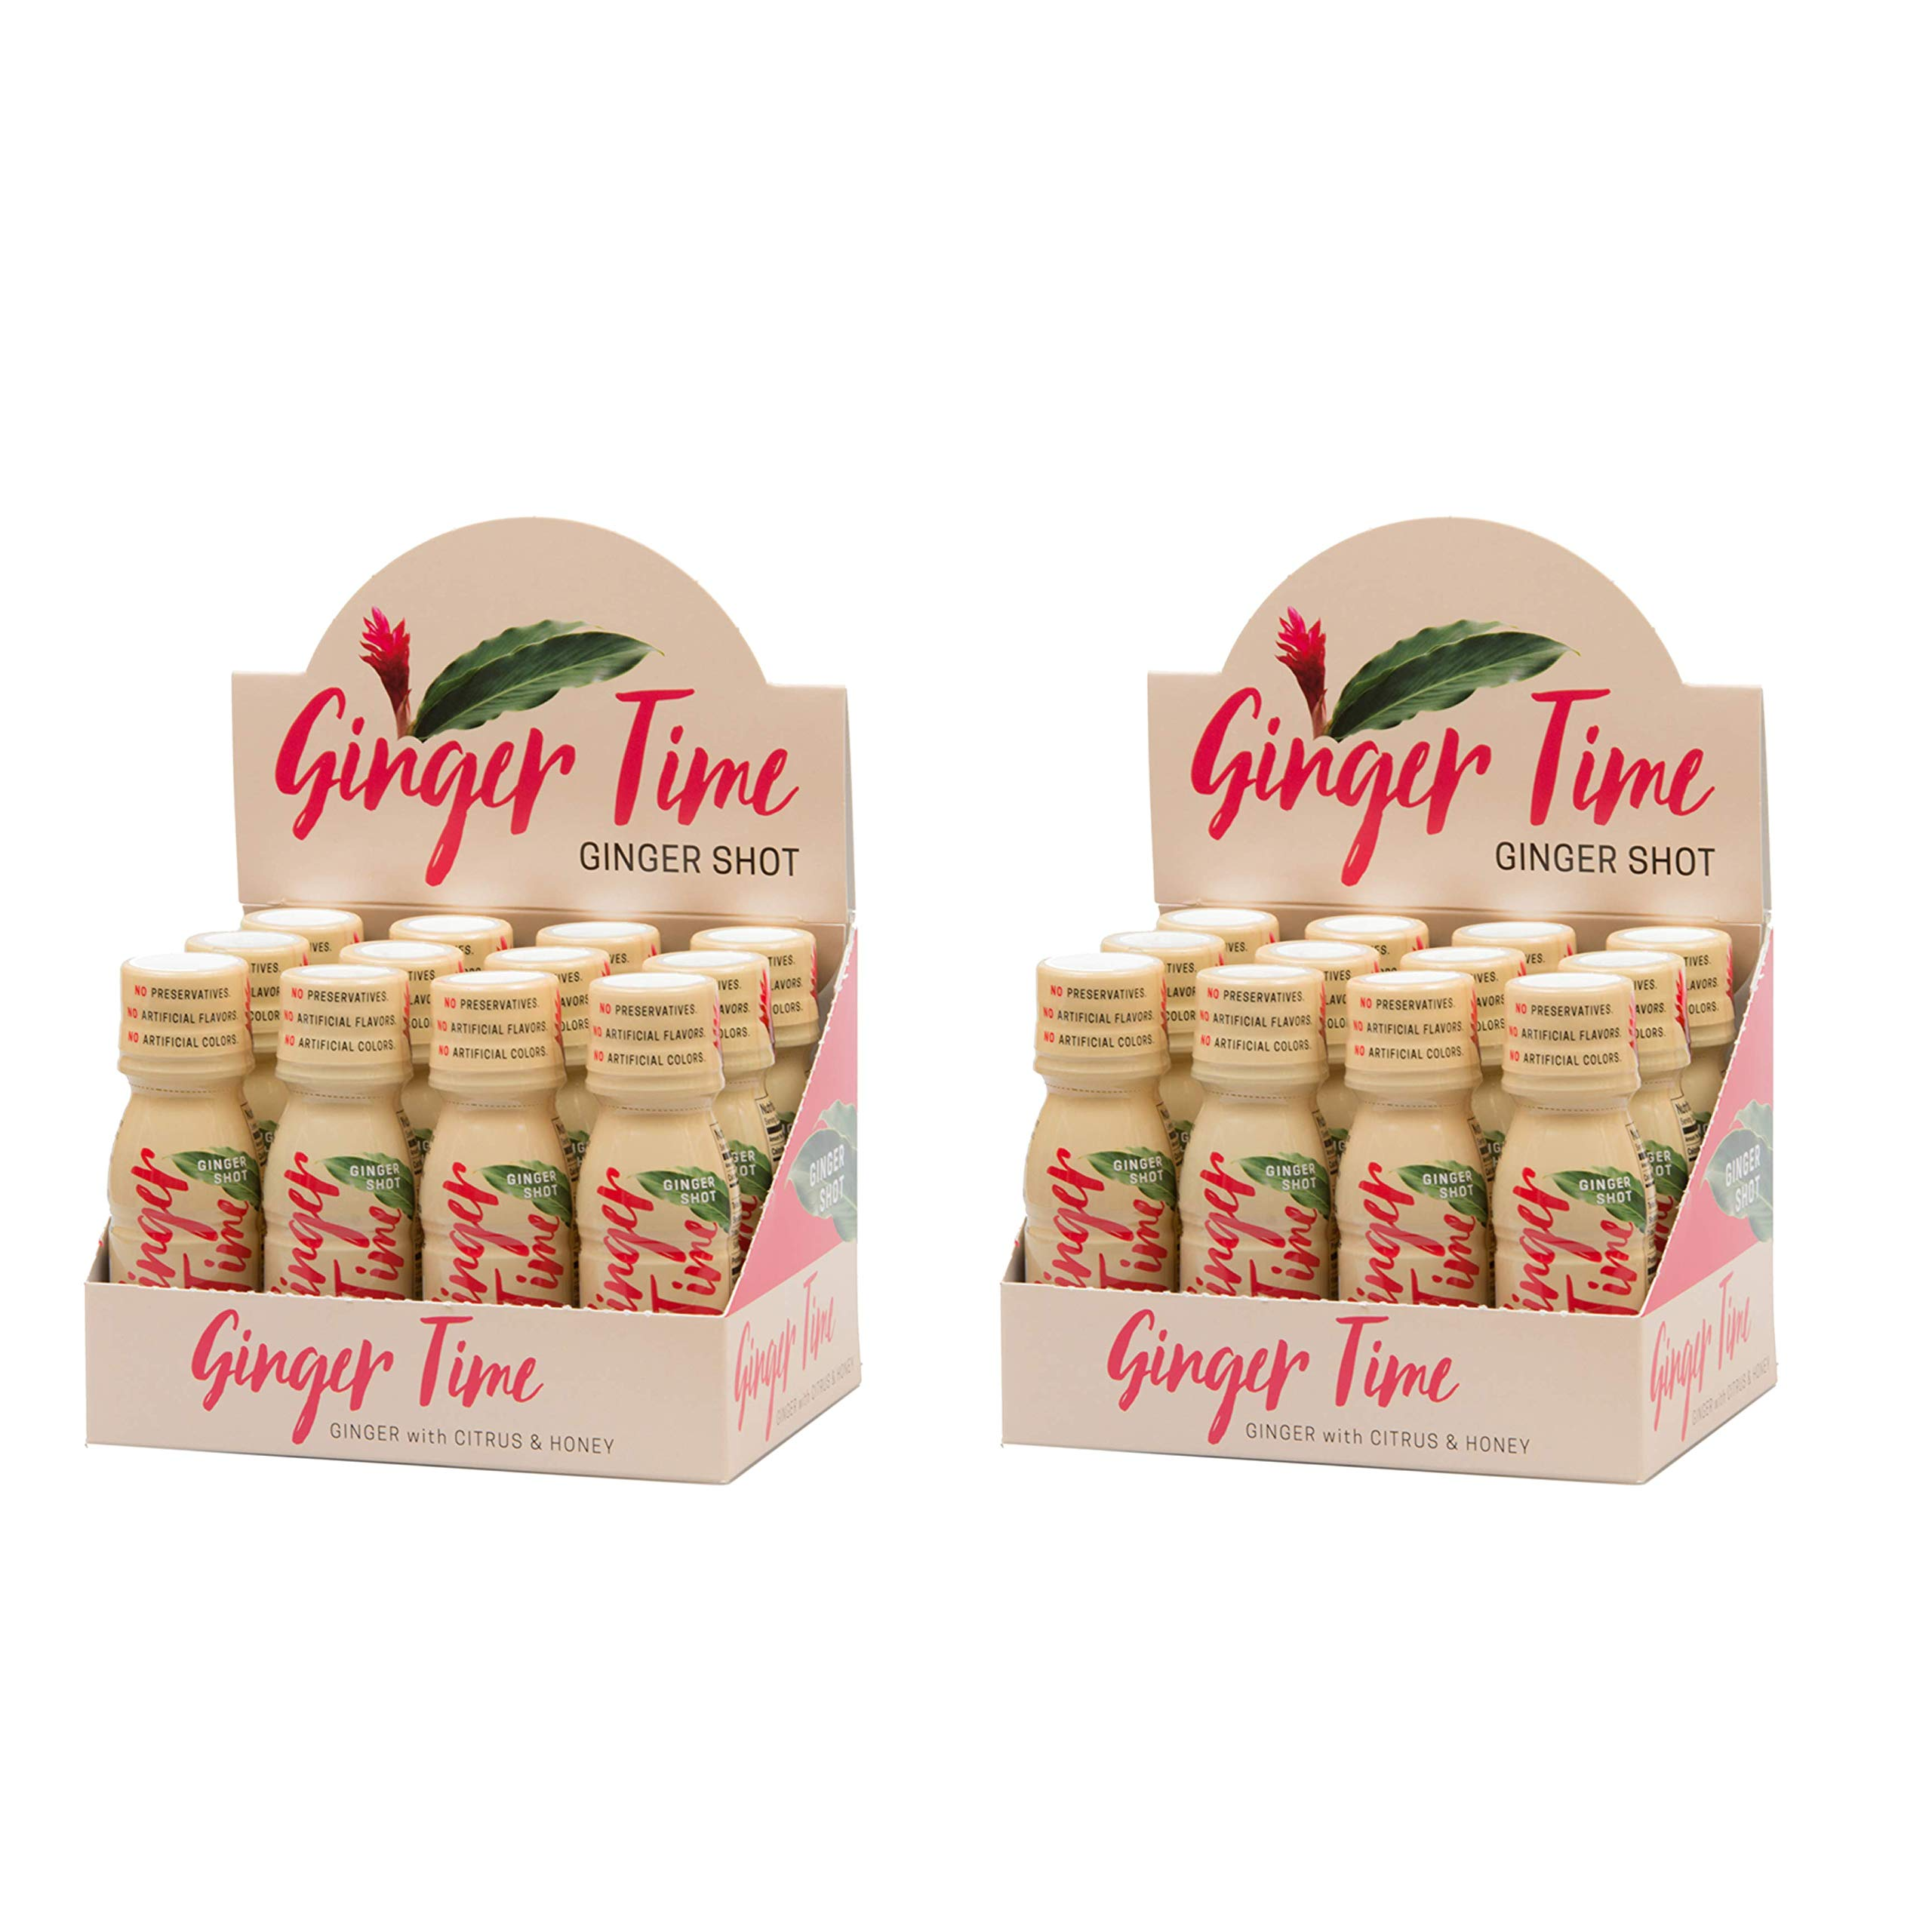 Ginger Time Ginger Shots - Ginger with Citrus & Honey | Non-GMO | No Preservatives or Artificial Flavors/Colors/Sweeteners | B Vitamins | No Need for Refrigeration (24 Pack)